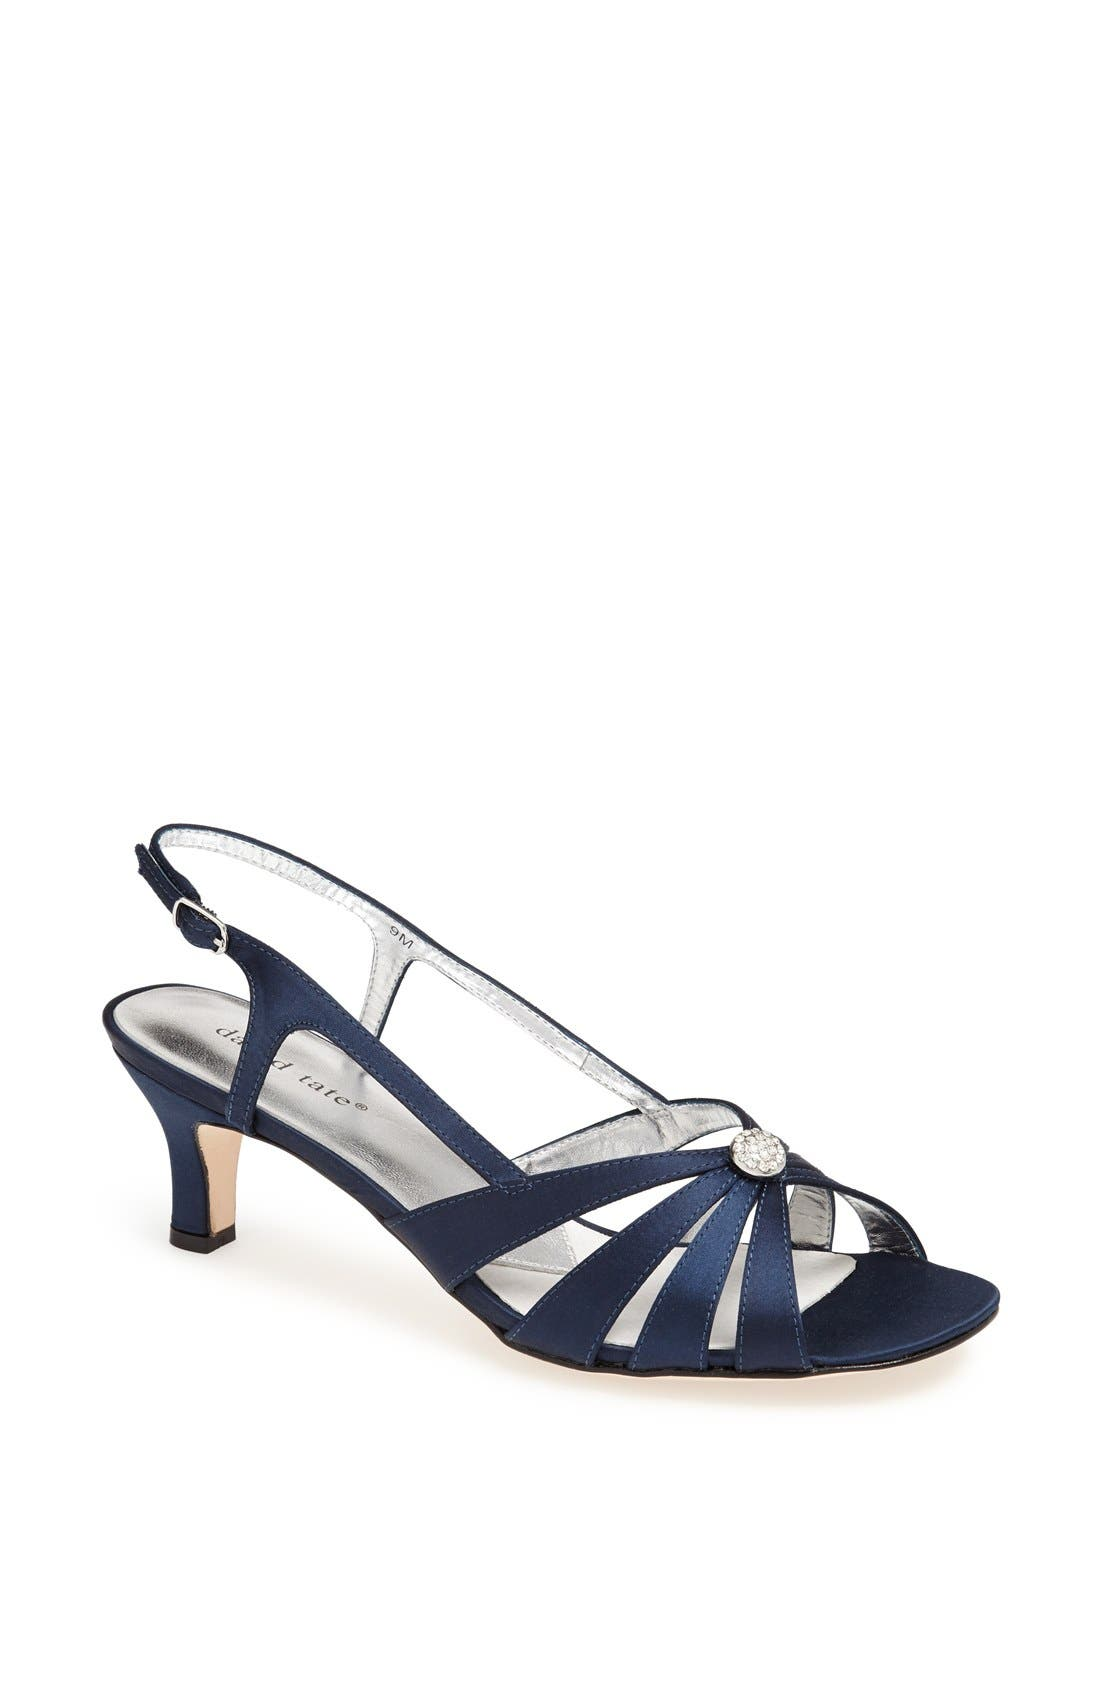 'Rosette' Sandal,                             Main thumbnail 1, color,                             NAVY